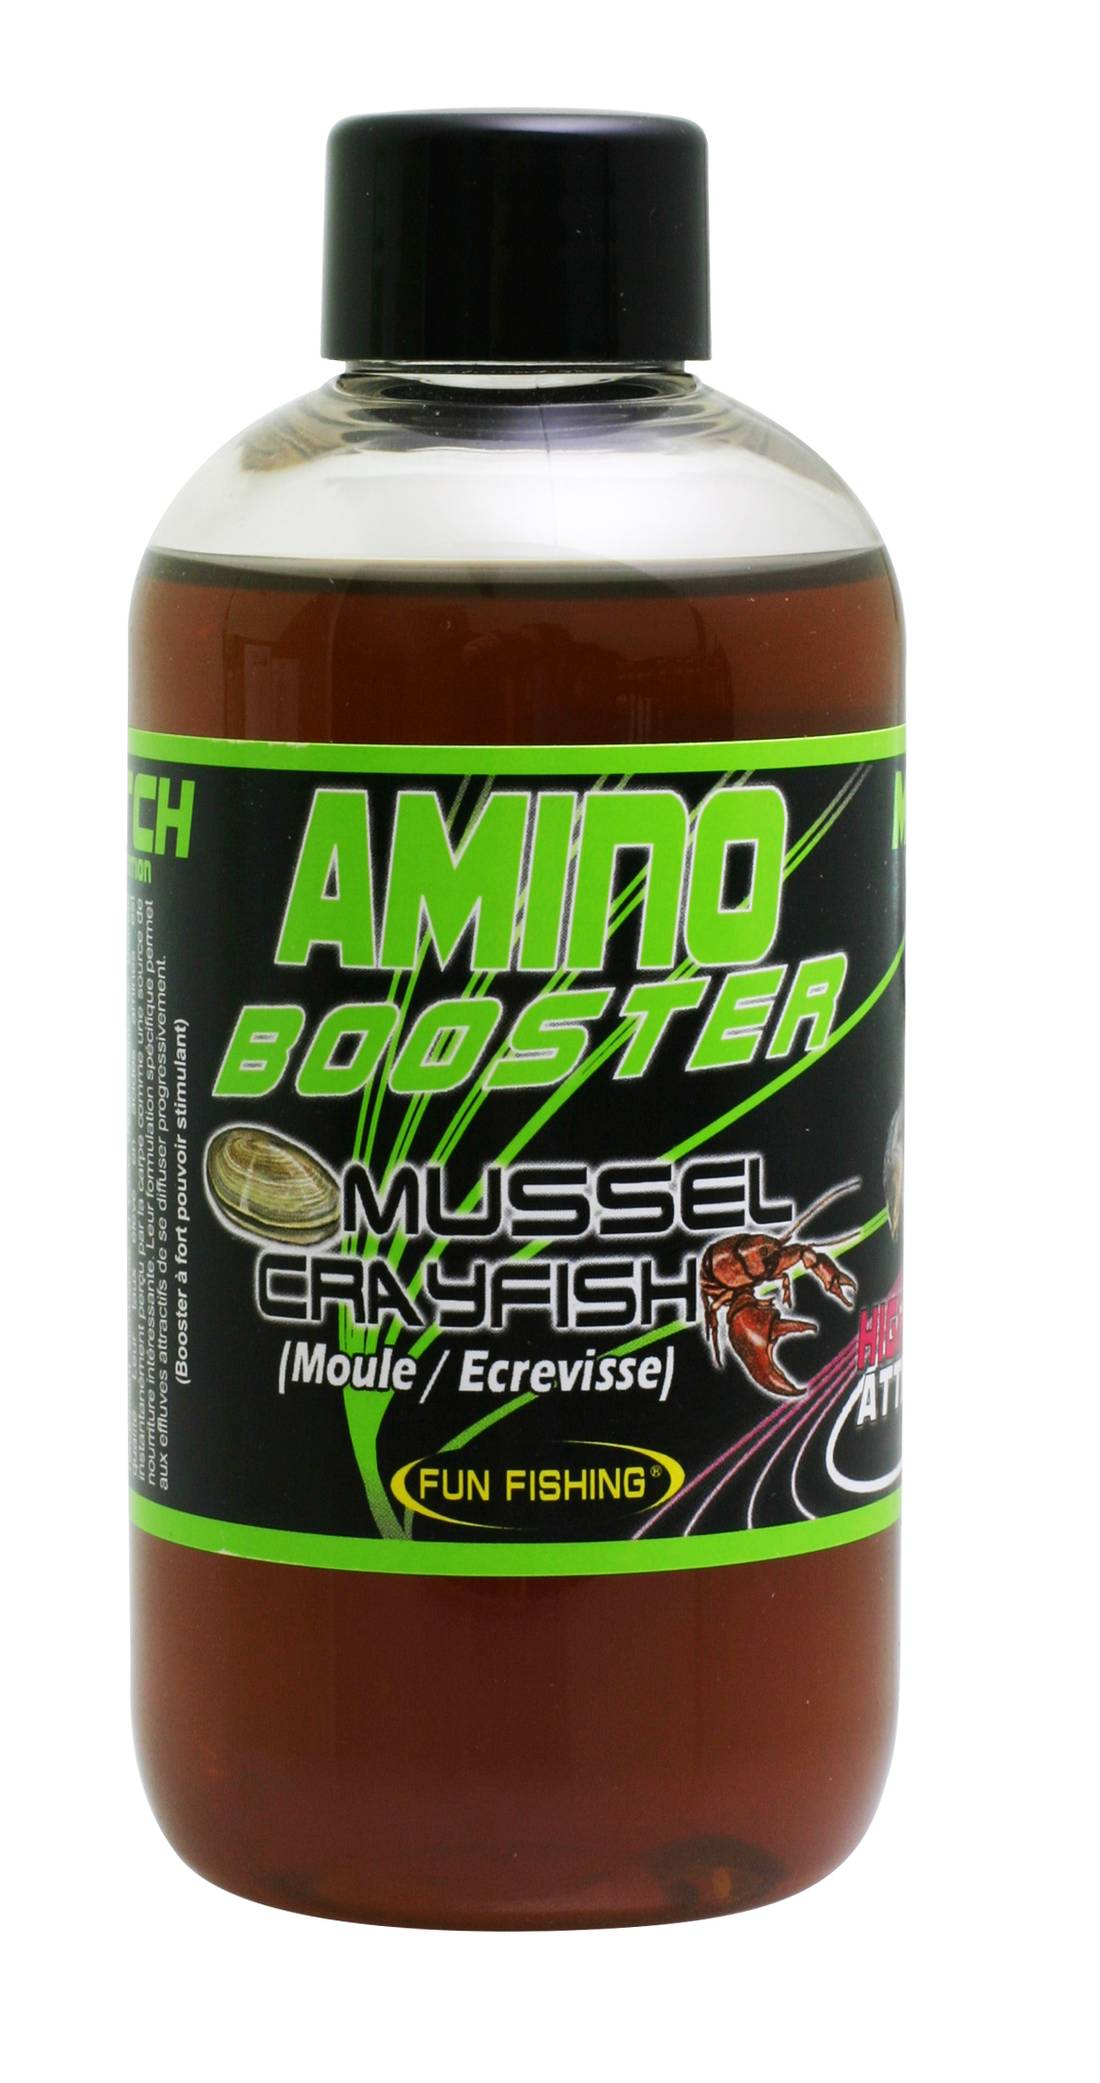 Amino Booster Fun Fishing 185ml Moule Ecrevisse